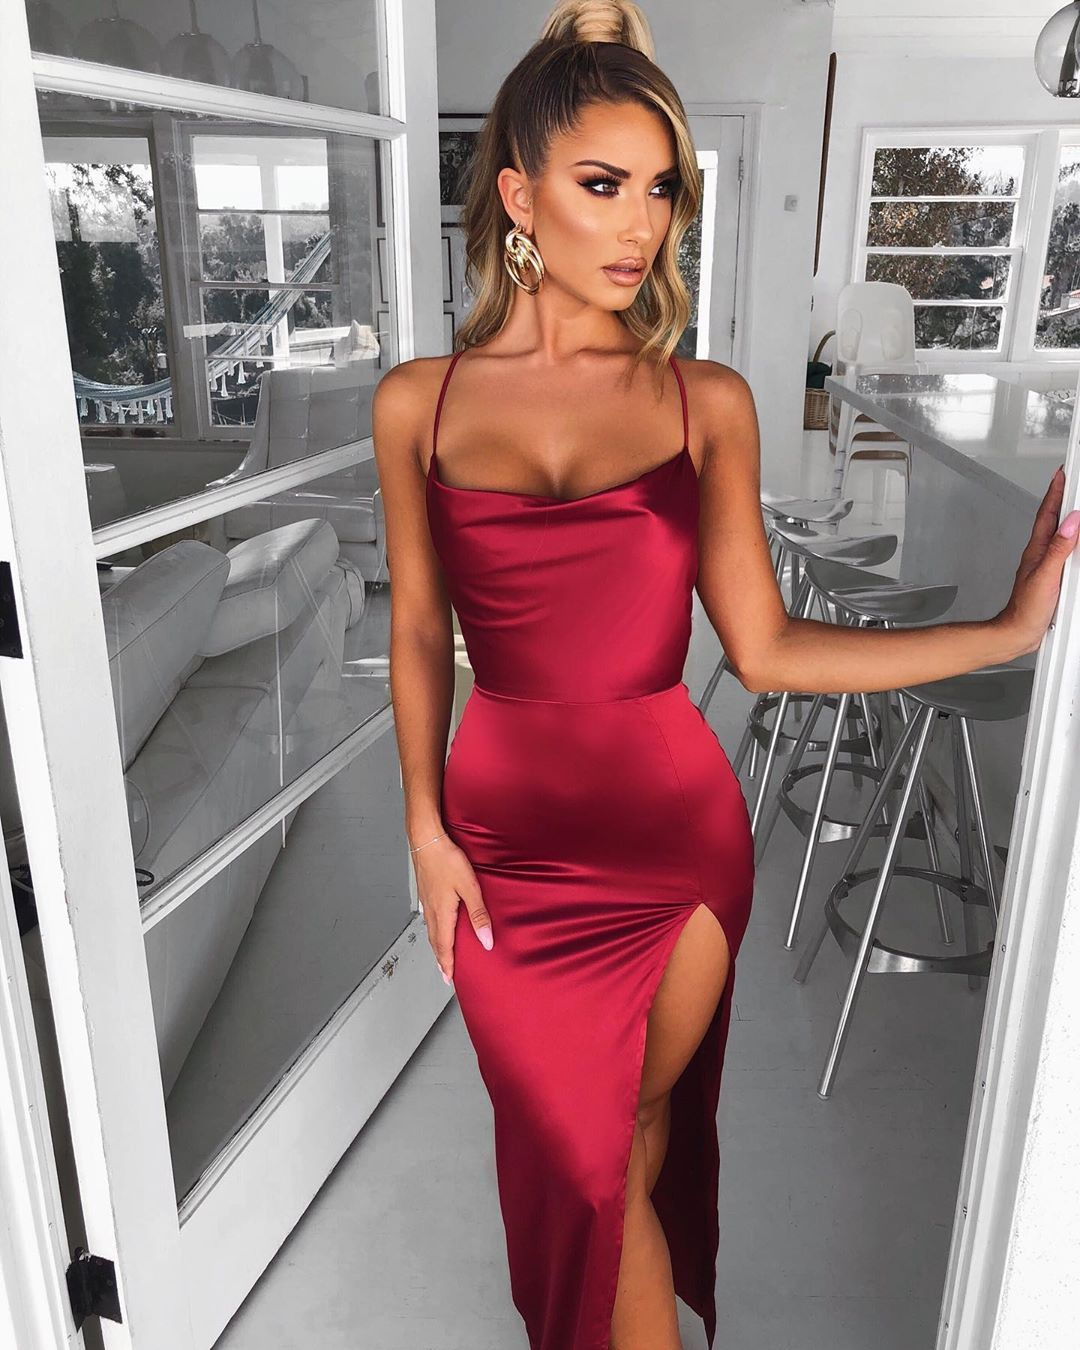 Pin By Haley Naley On Formal In 2020 Prom Dresses Cute Prom Dresses Evening Dresses